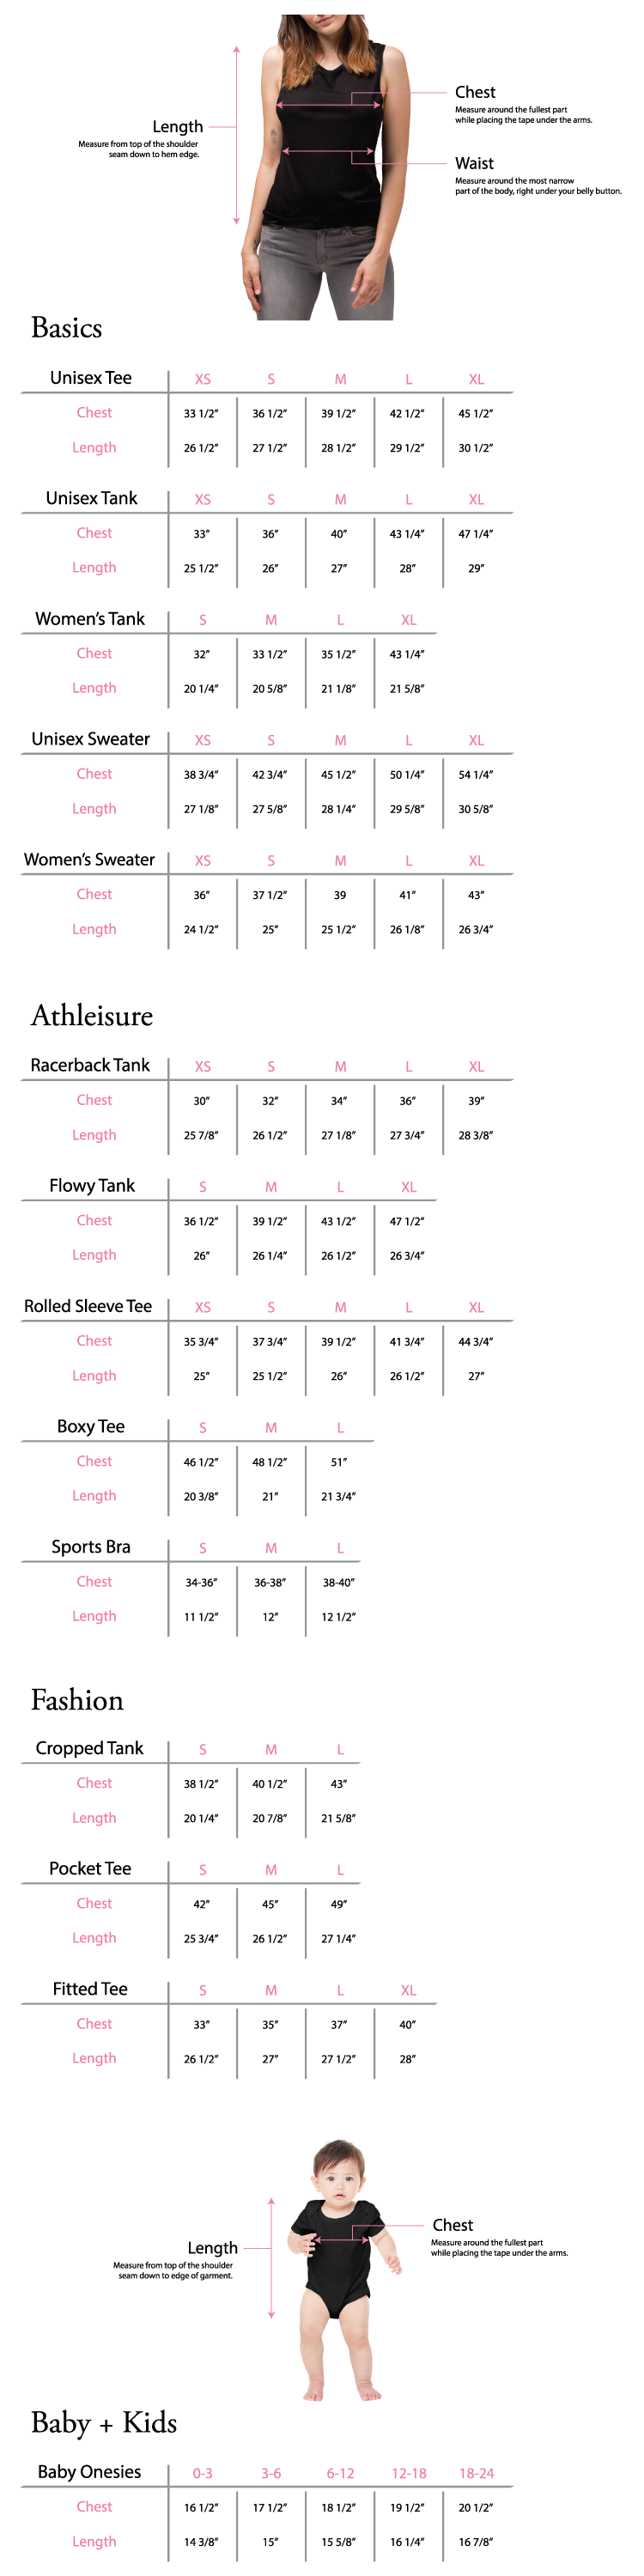 New Signature Collection Size Guide